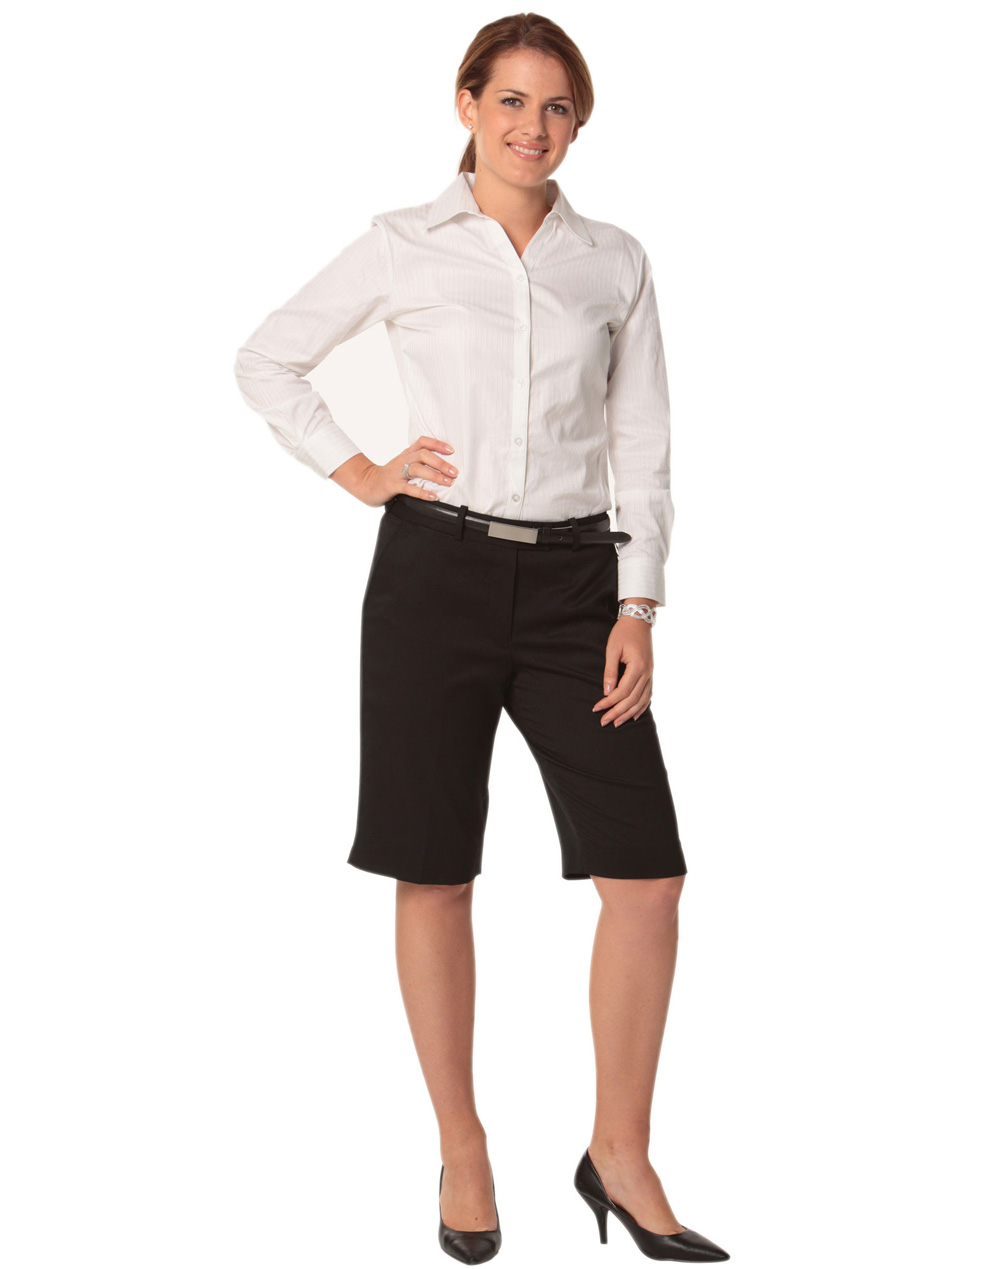 Gap is your source with a fashionable women's knee length shorts collection that is always quality made. Browse our knee length shorts selection for colors, prints, and patterns you will love.